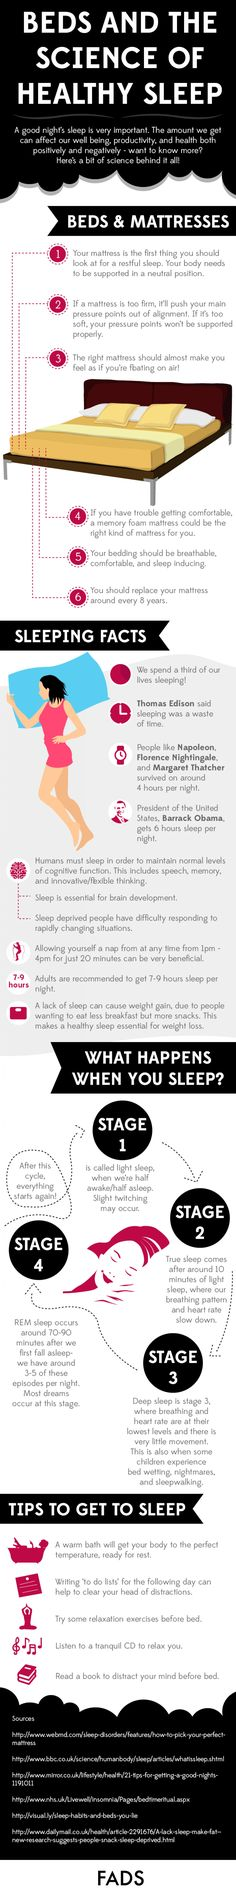 Beds and the Science of Healthy Sleep Infographic